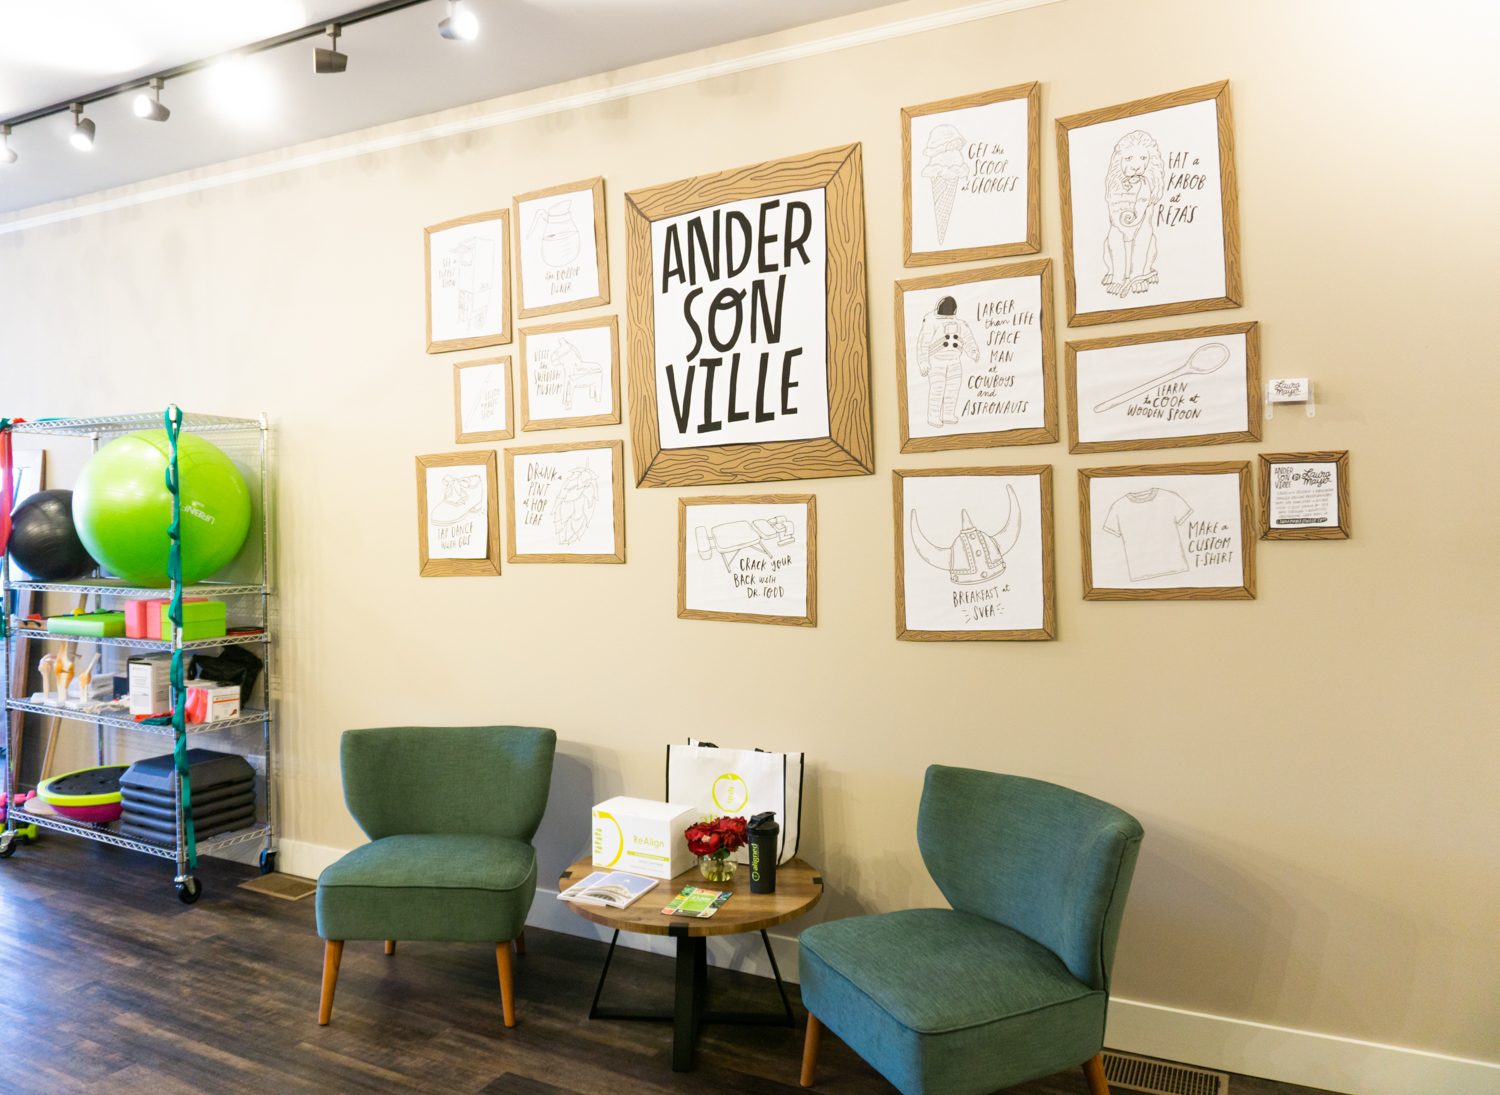 More Ways to Make Health Happen in Andersonville